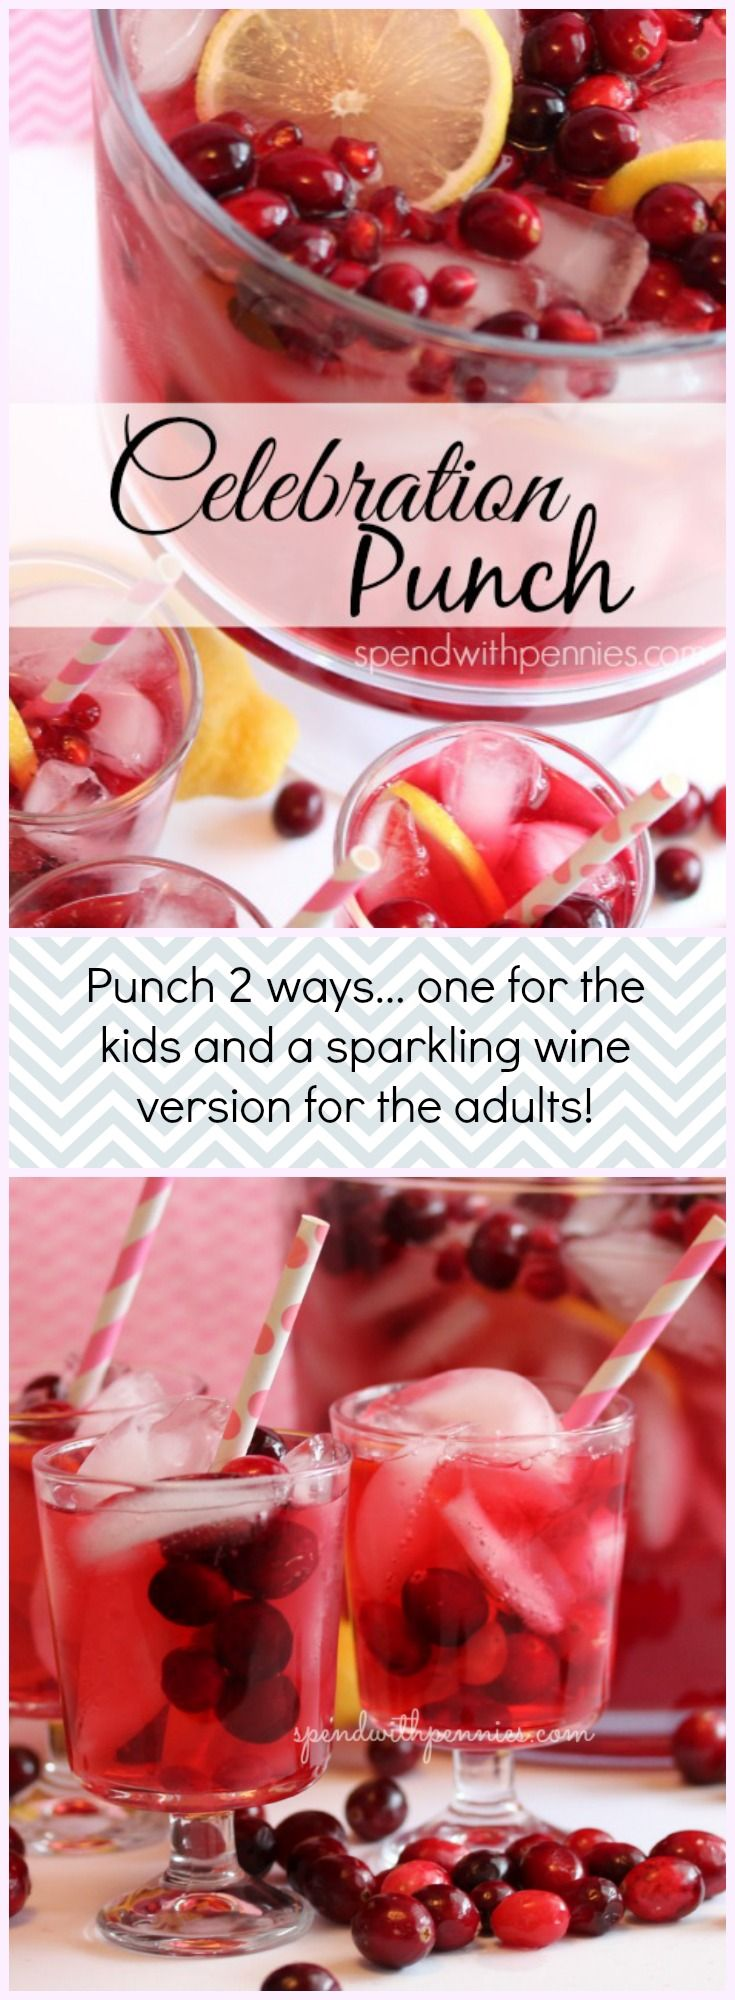 Celebration Punch 2 ways! One for the kids and a spiked sparkling white wine punch for the grown ups! Perfect for any time of year and a great way to serve cocktails to a crowd!